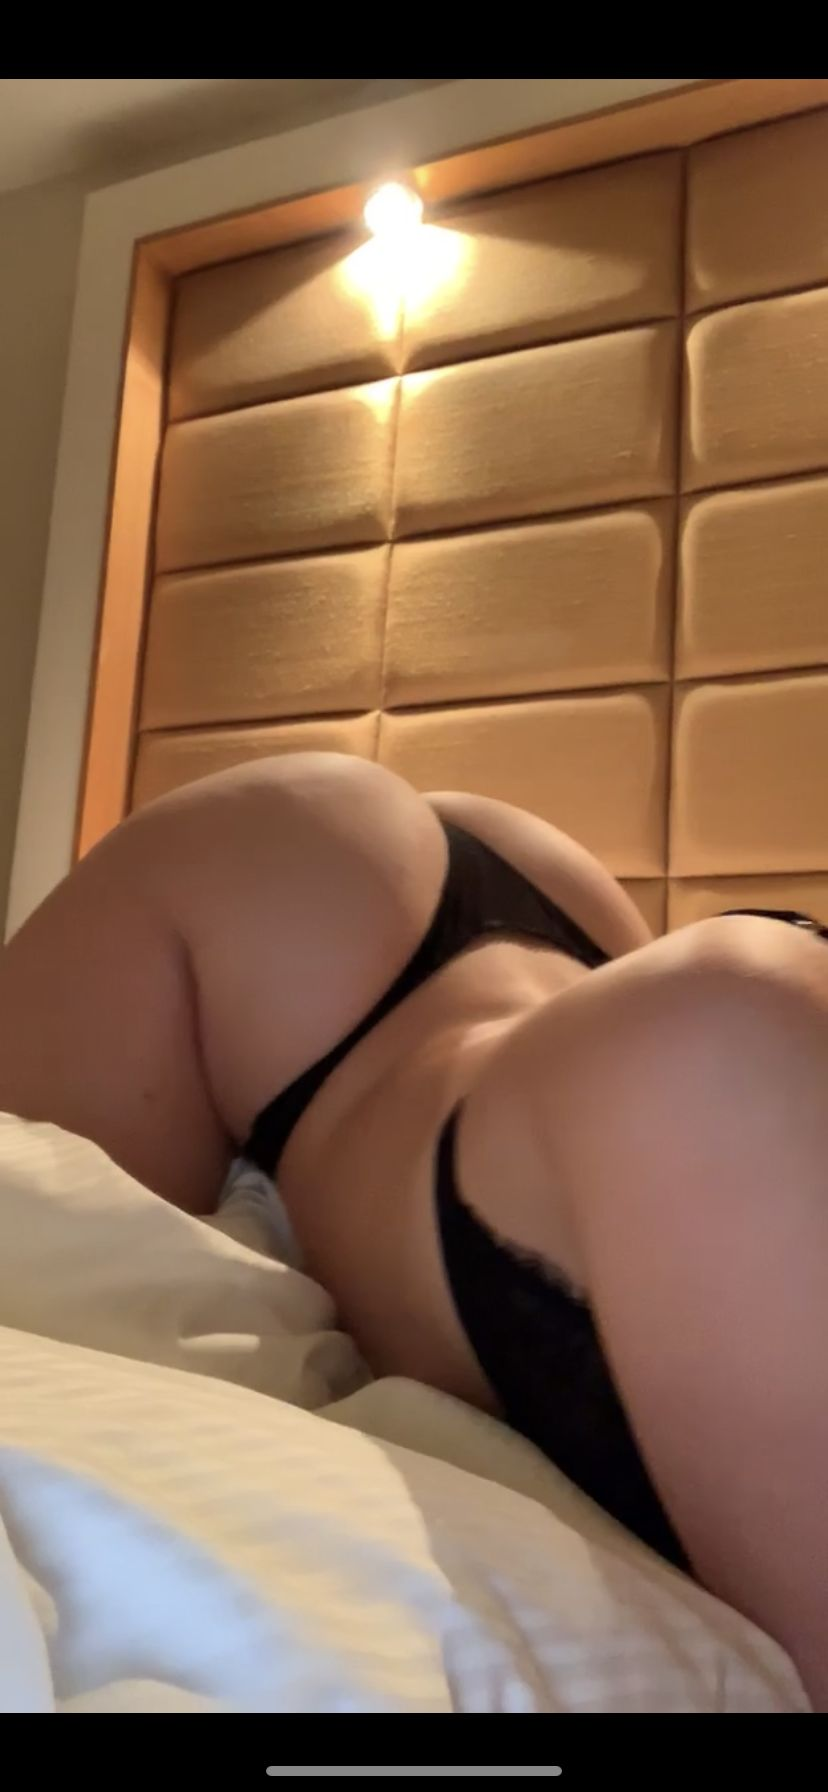 Onlyfans Amber Mae onlyfans leaked